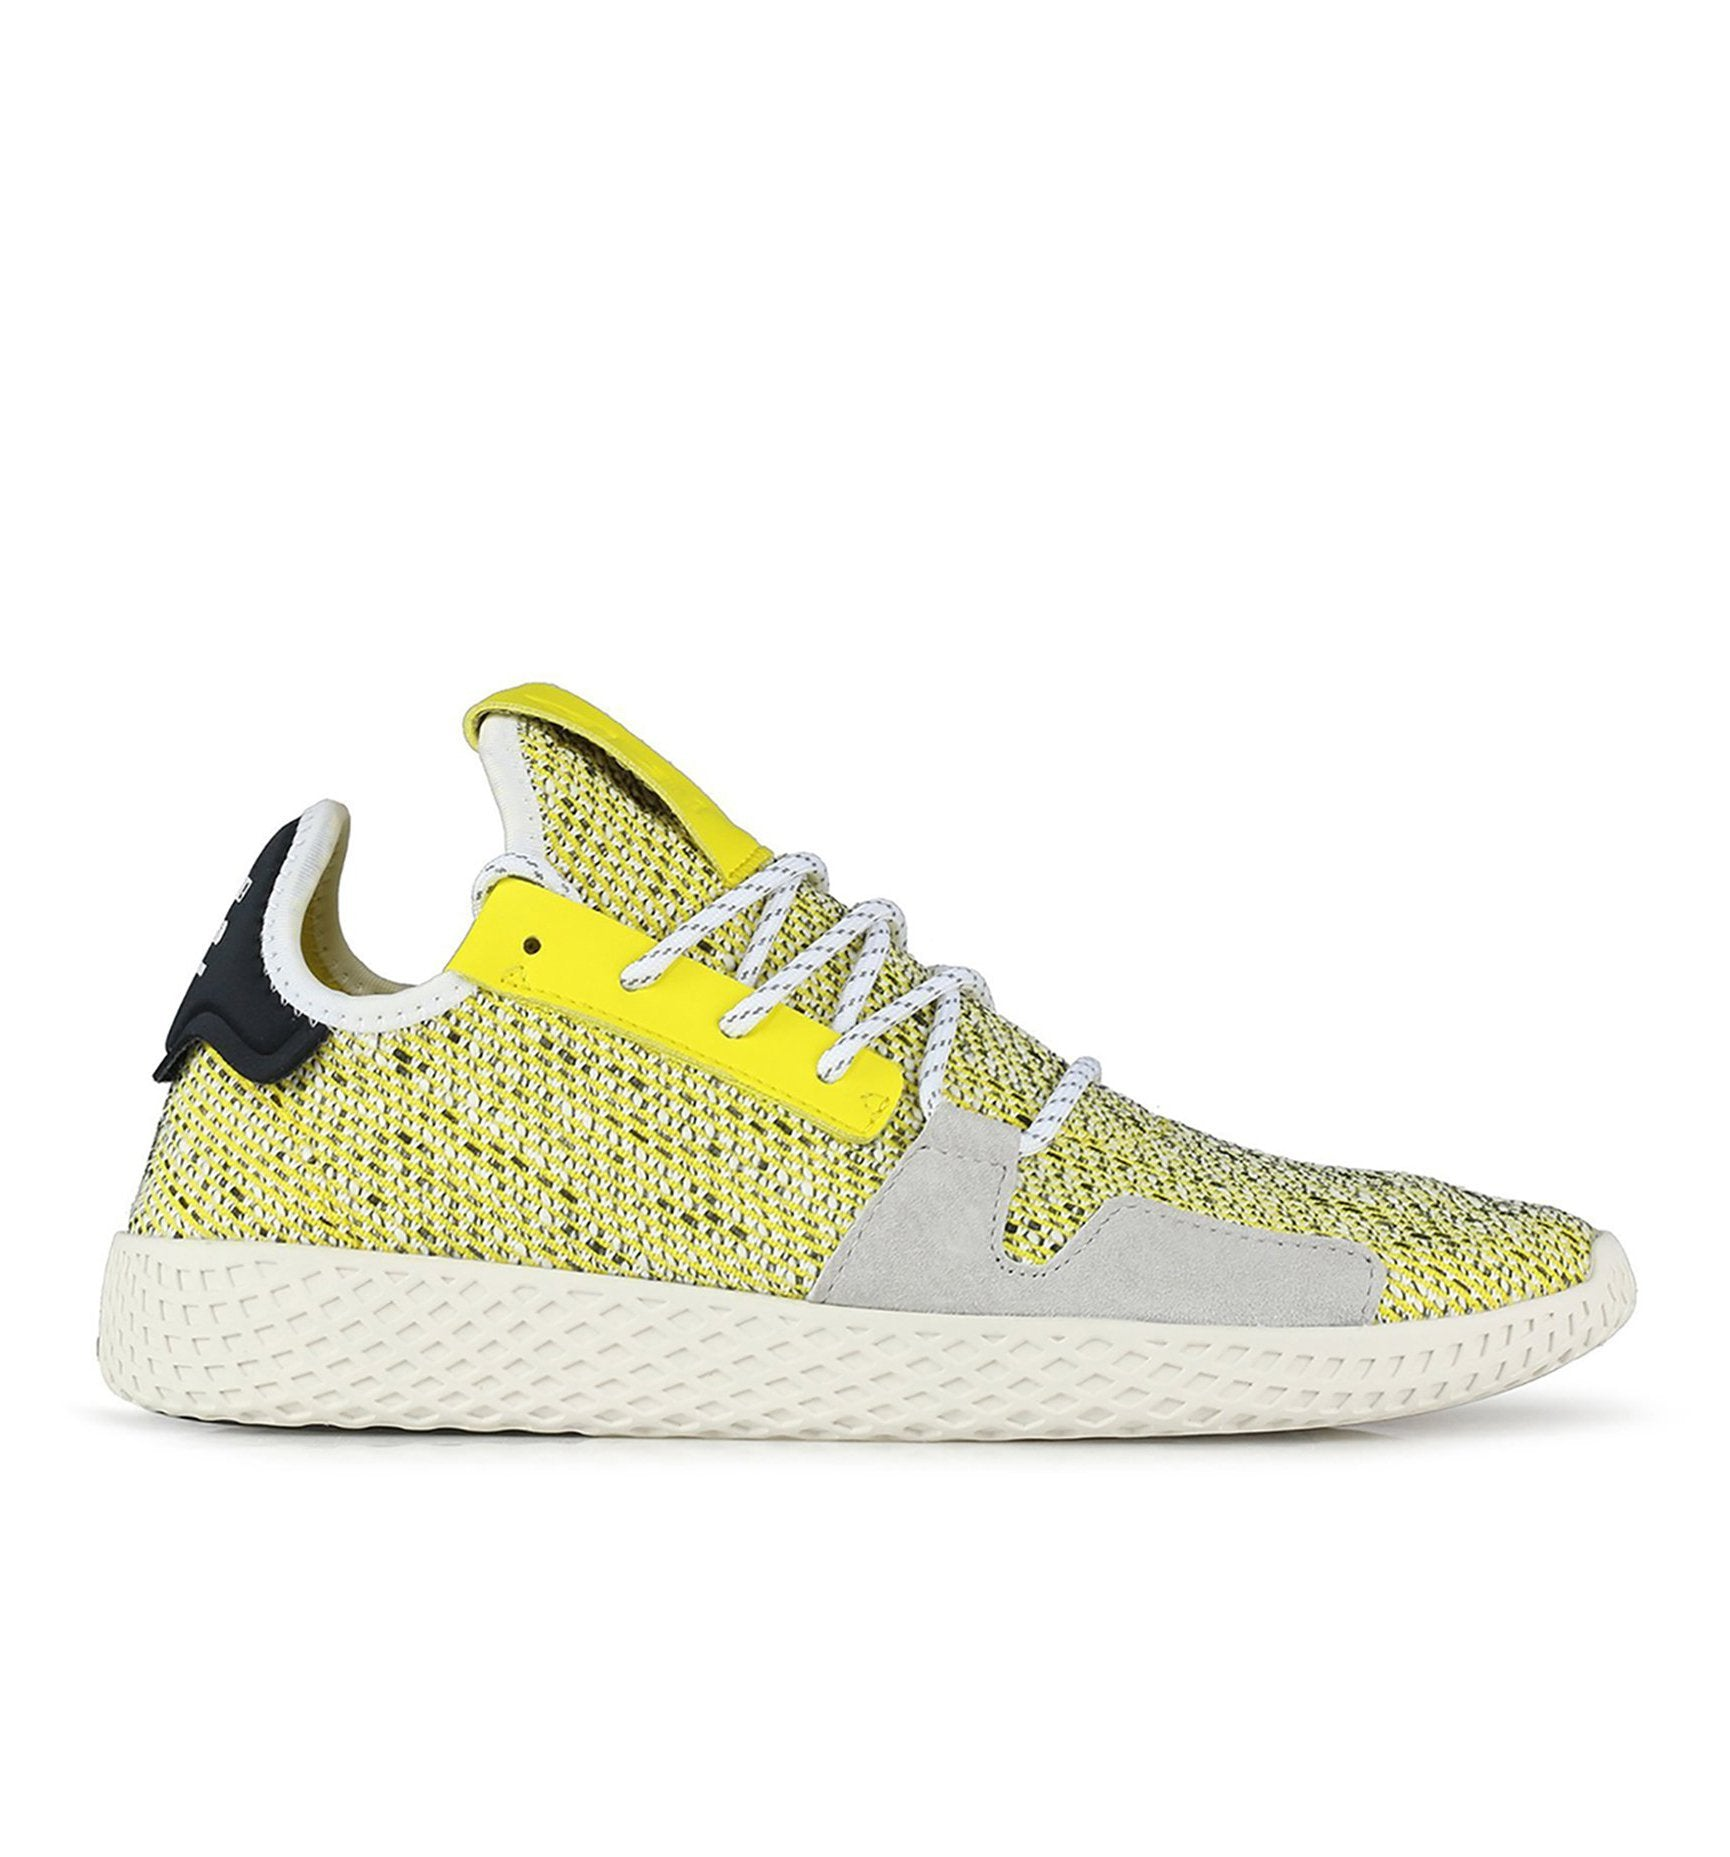 adidas Originals x Pharrell Williams Solar Tennis HU V2